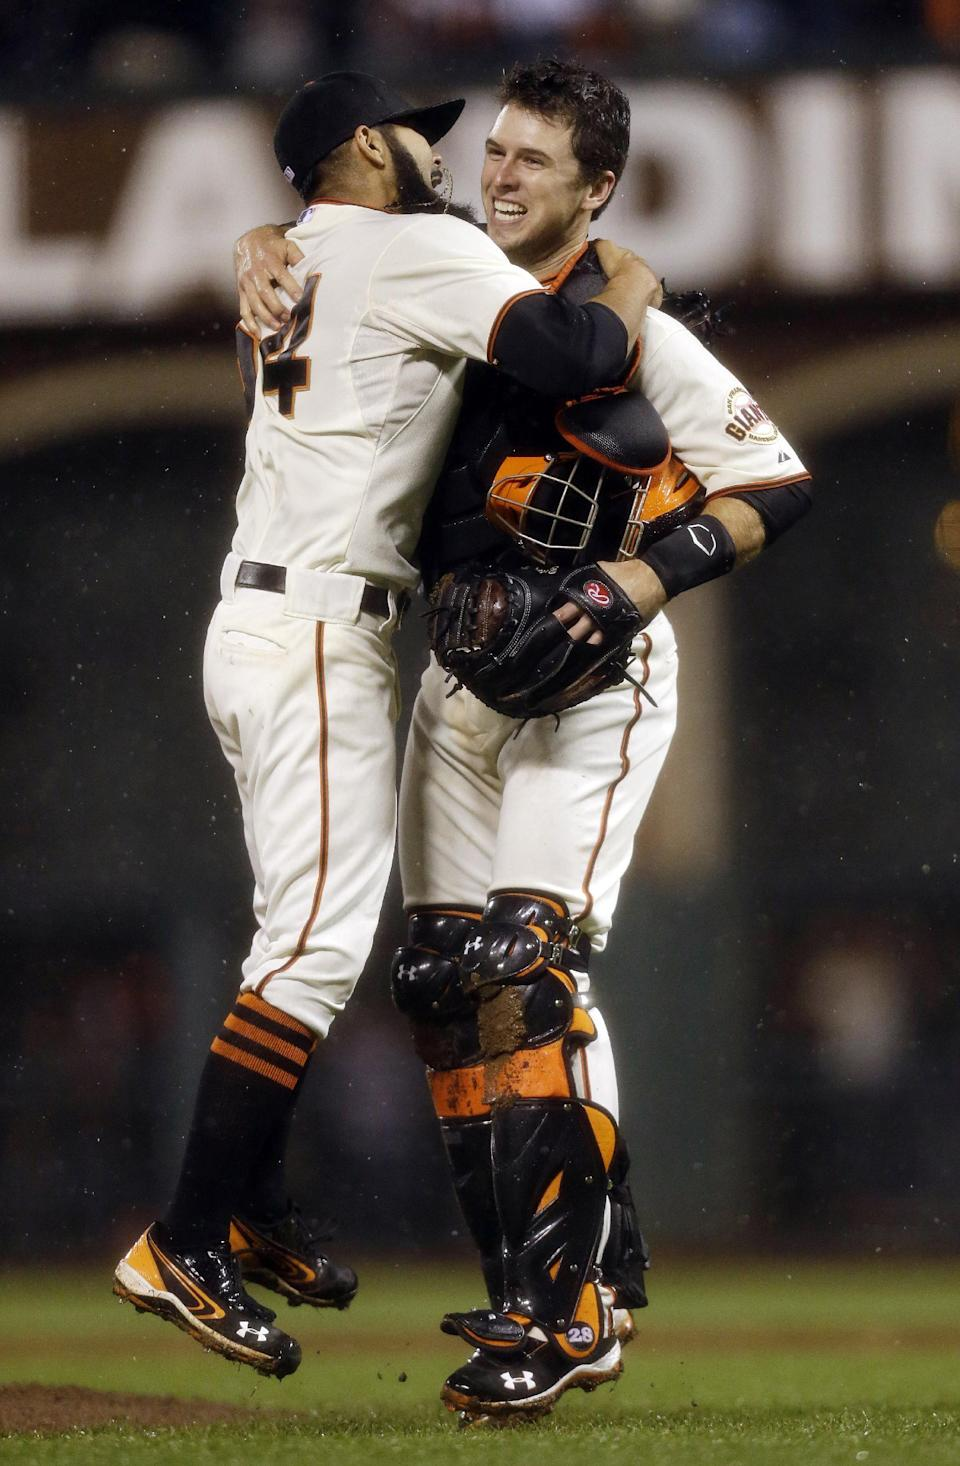 San Francisco Giants relief pitcher Sergio Romo and catcher Buster Posey react after the final out in Game 7 of baseball's National League championship series against the St. Louis Cardinals Monday, Oct. 22, 2012, in San Francisco. The Giants won 9-0 to win the series. (AP Photo/Ben Margot)